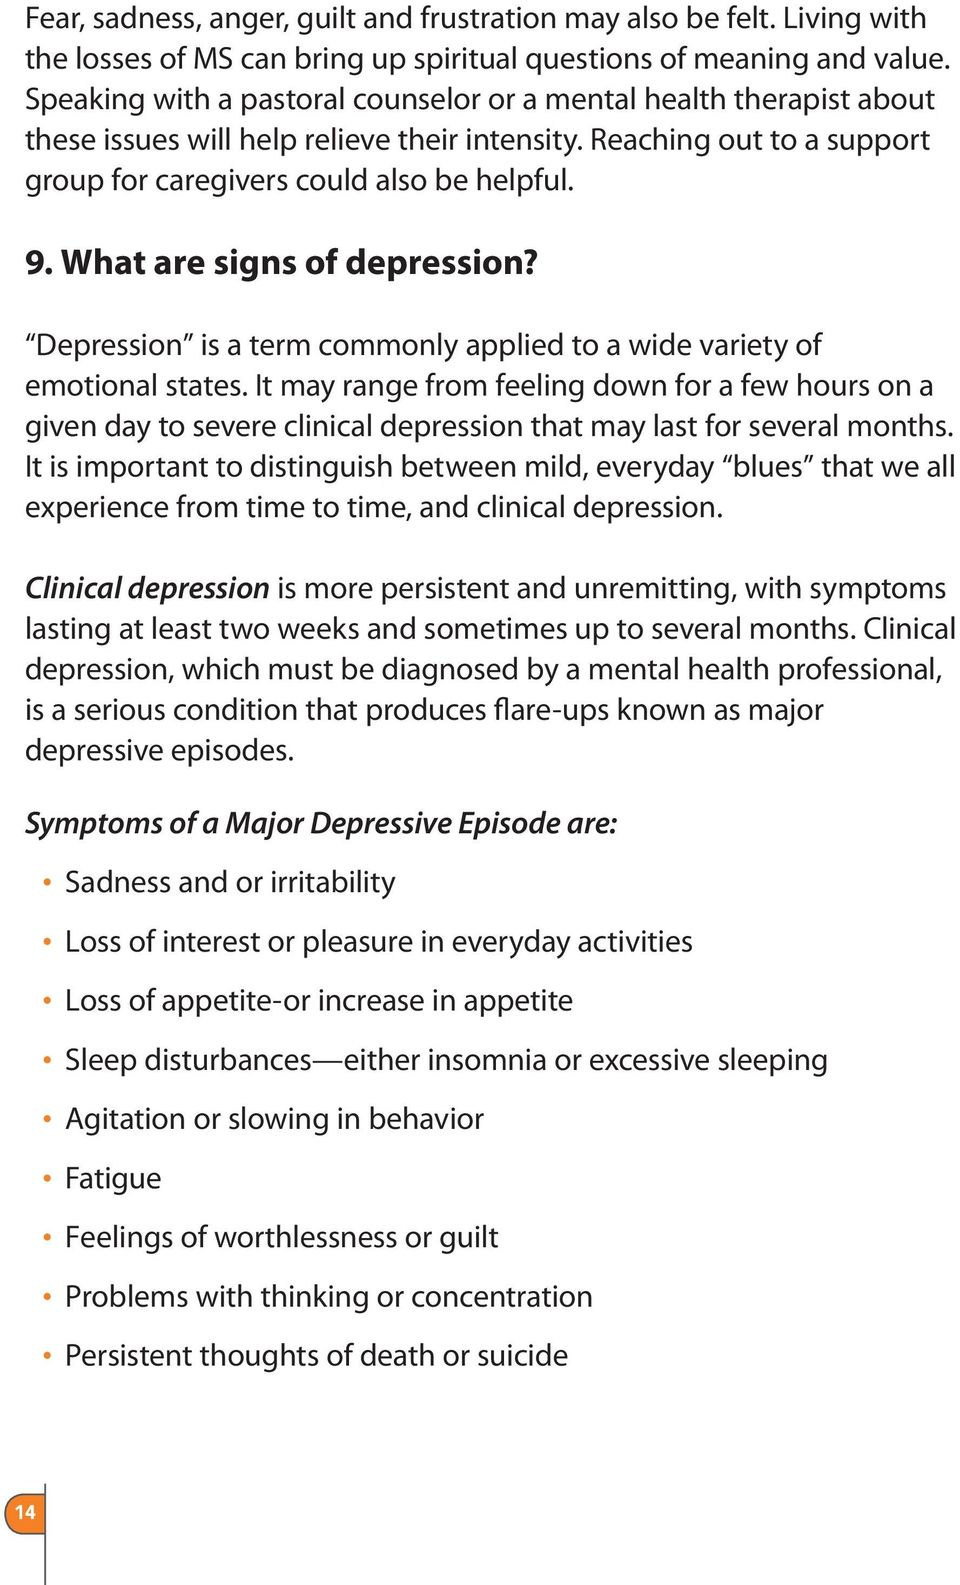 What are signs of depression? Depression is a term commonly applied to a wide variety of emotional states.